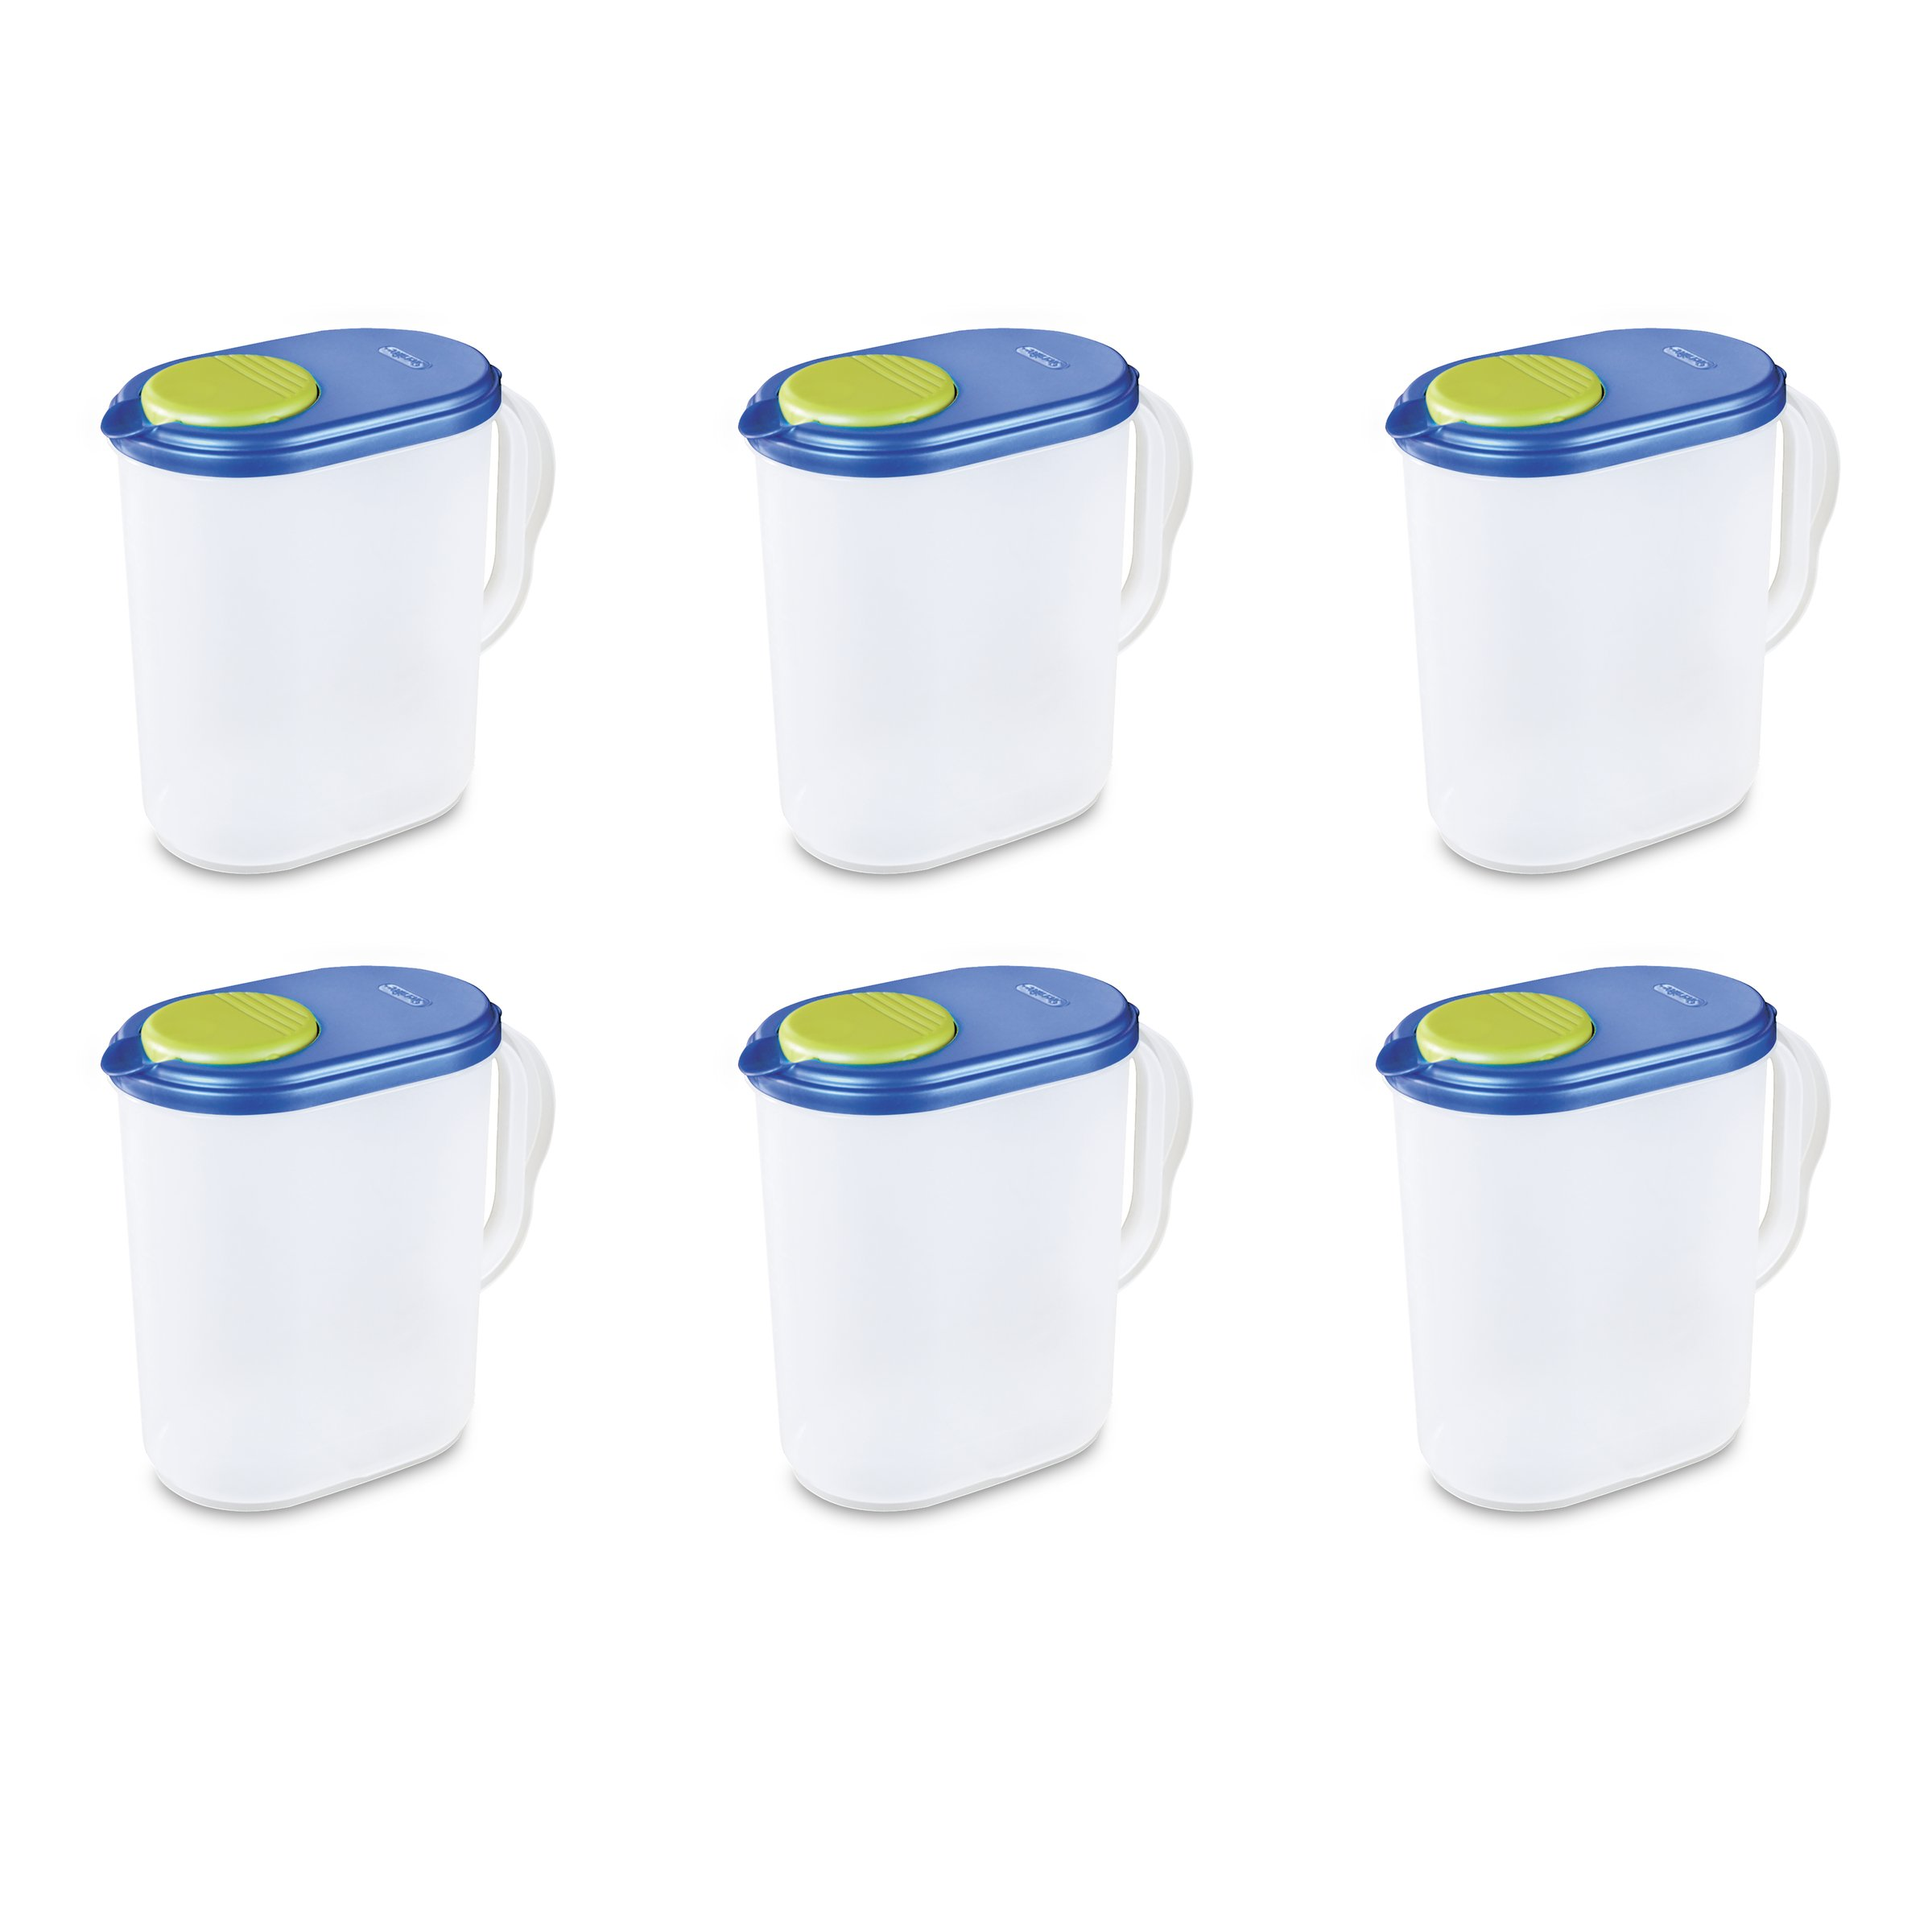 Sterilite 04904106 1 Gallon Pitcher, Blue Sky Lid w/ Lime Tab & Clear Base, 6-Pack